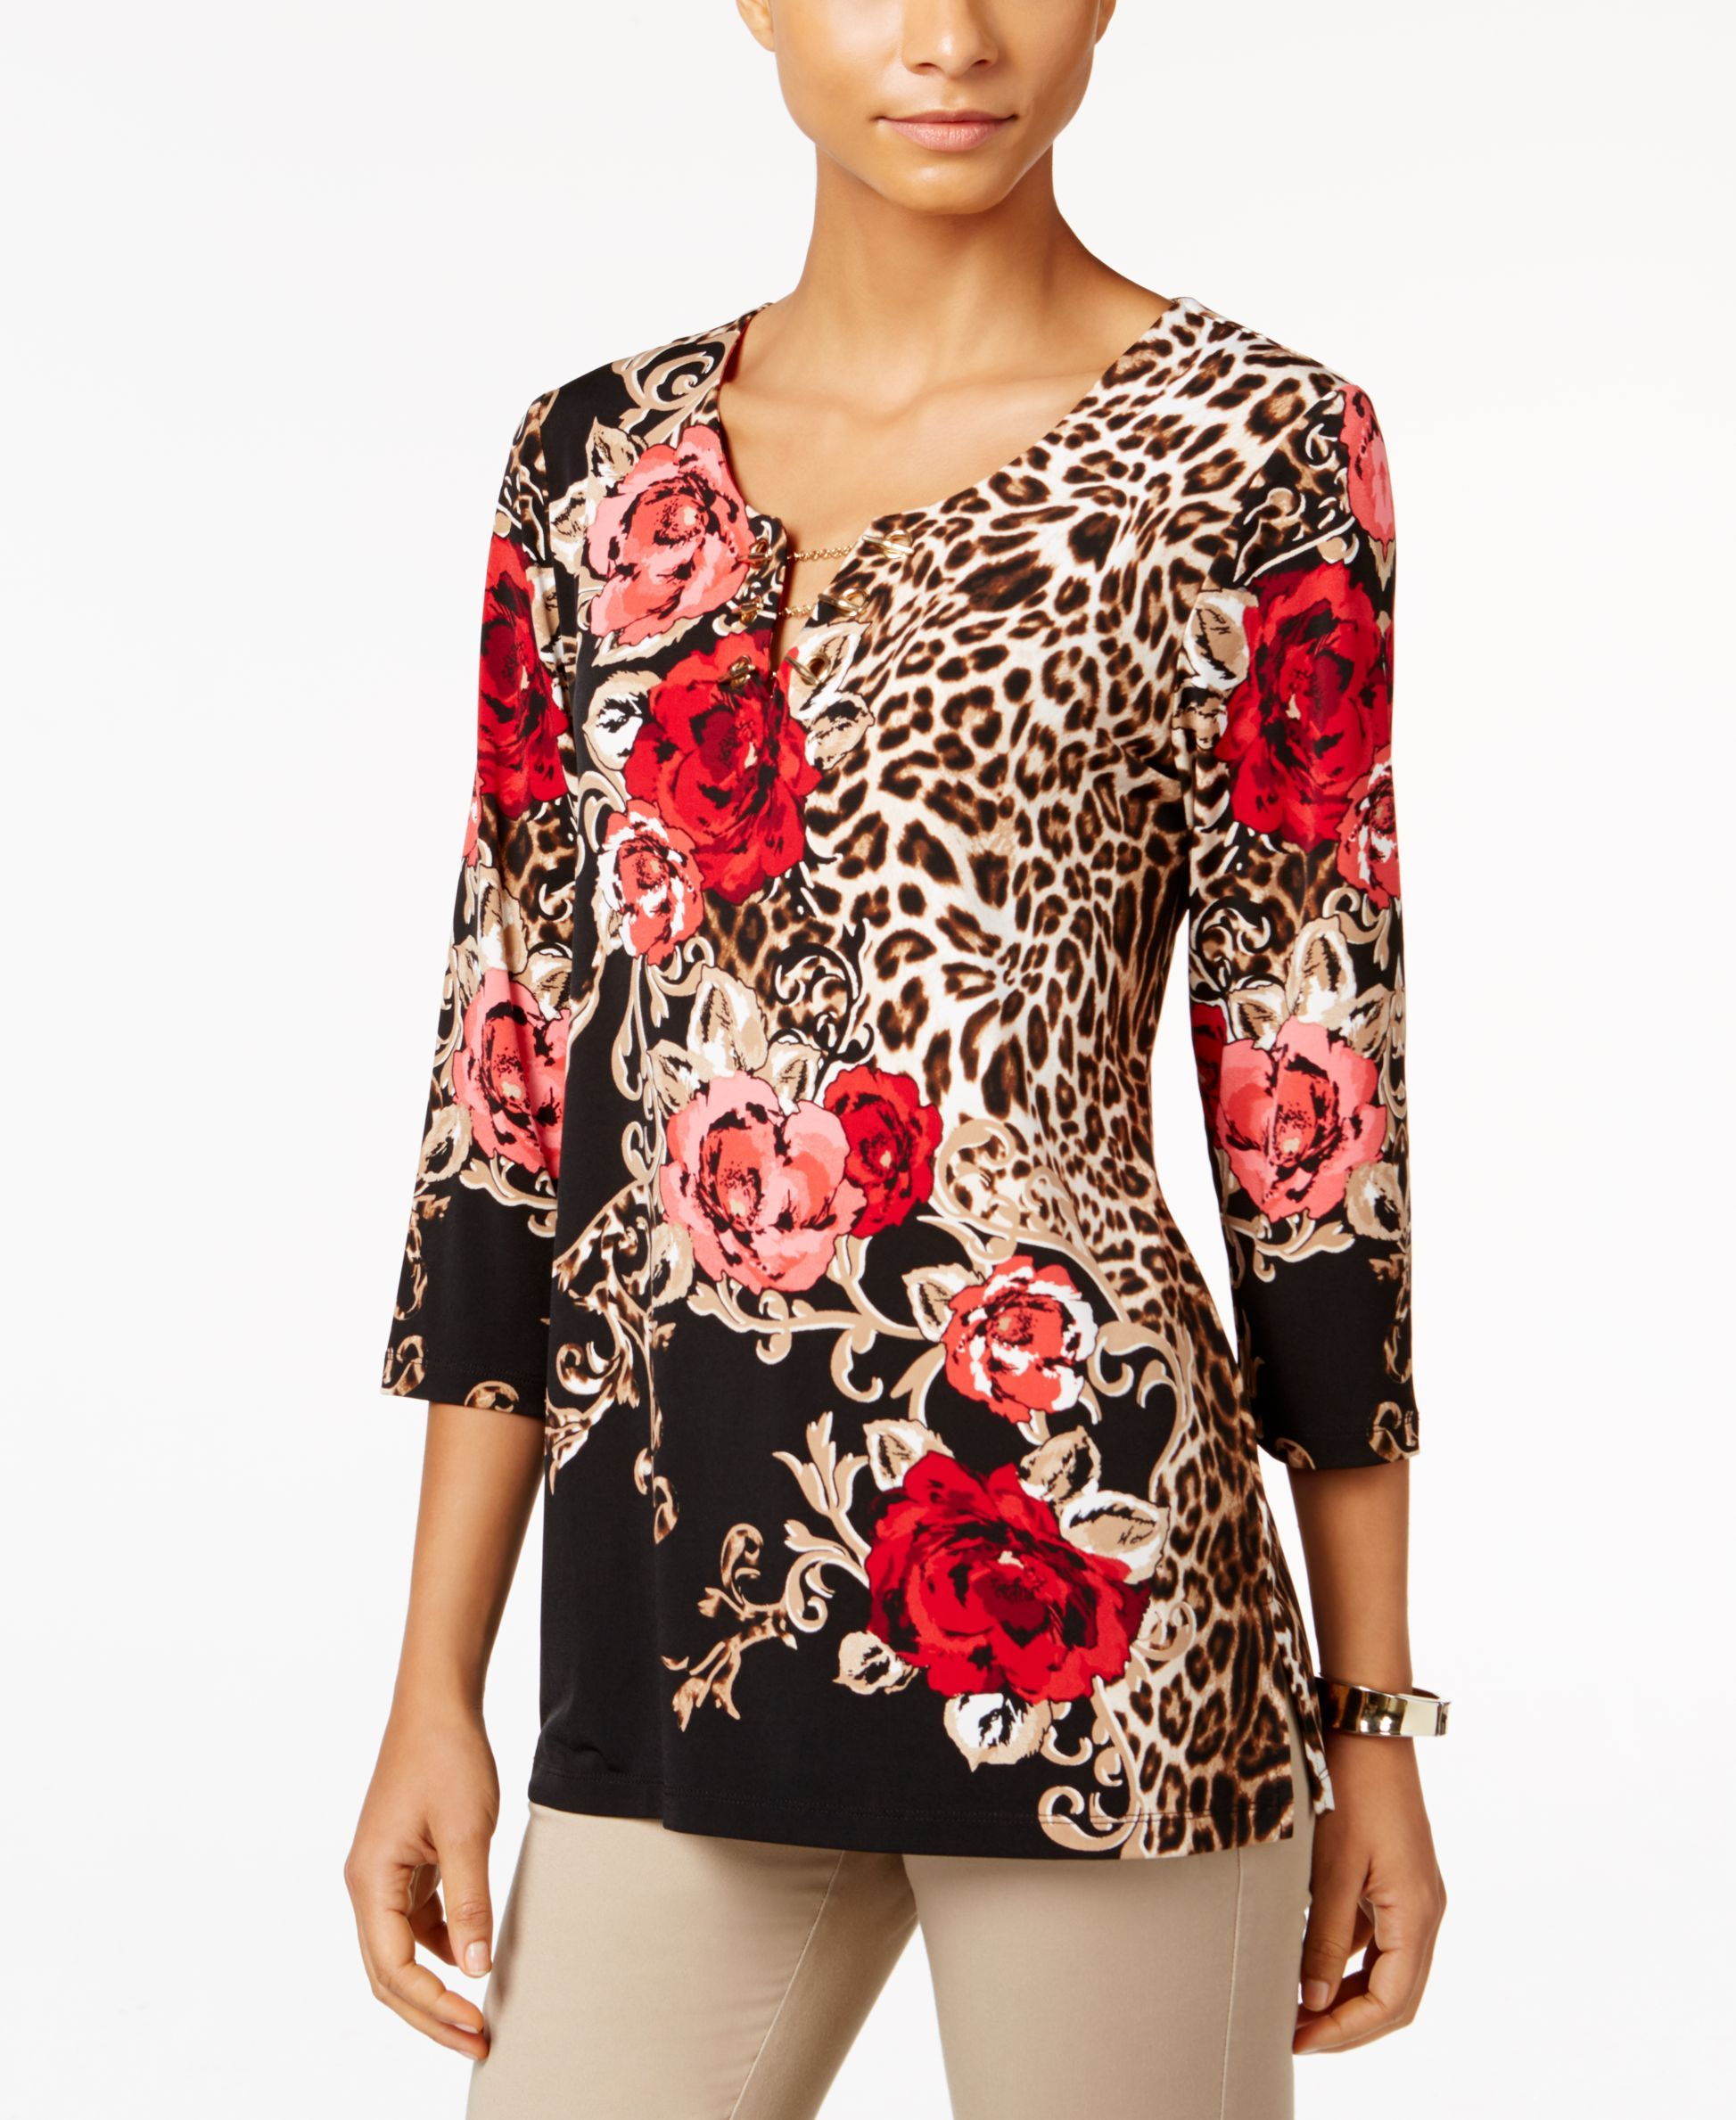 Jm Collection Chiffon-Trim Keyhole Top, Only at Macys